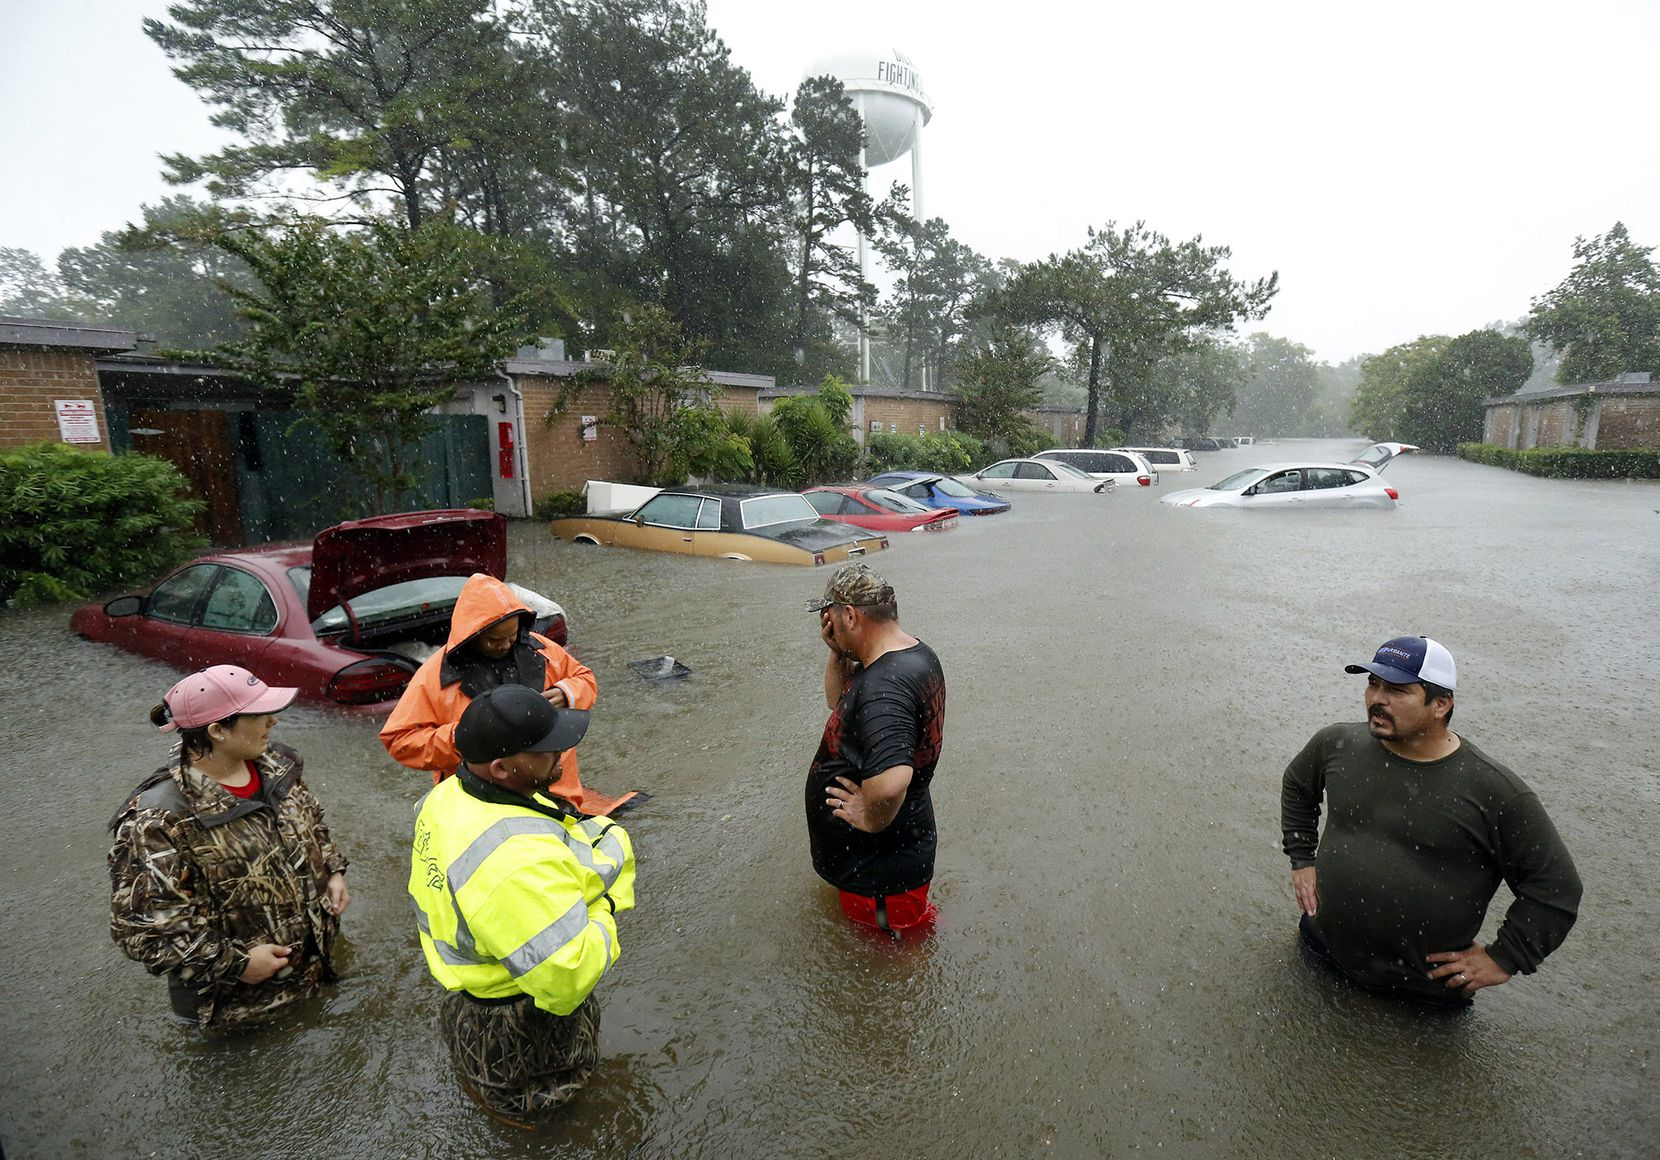 Local volunteers including Christina Crump (left) and her husband Aaron Crump (foreground), and Zach Brandenburg (second from right) stood in waist-high water and a downpour from Tropical Storm Harvey as thy waited for the military-type hauler to start after it became flooded out, Monday, August 28, 2017 in Dickinson, Texas. The crew was helping evacuate distressed residents from their rain-soaked Dickinson homes during welfare checks. Later residents were given a mandatory evacuation notice. Residents were transported to City Hall and the First Baptist Church for transport to the Brown Convention Center in Houston.